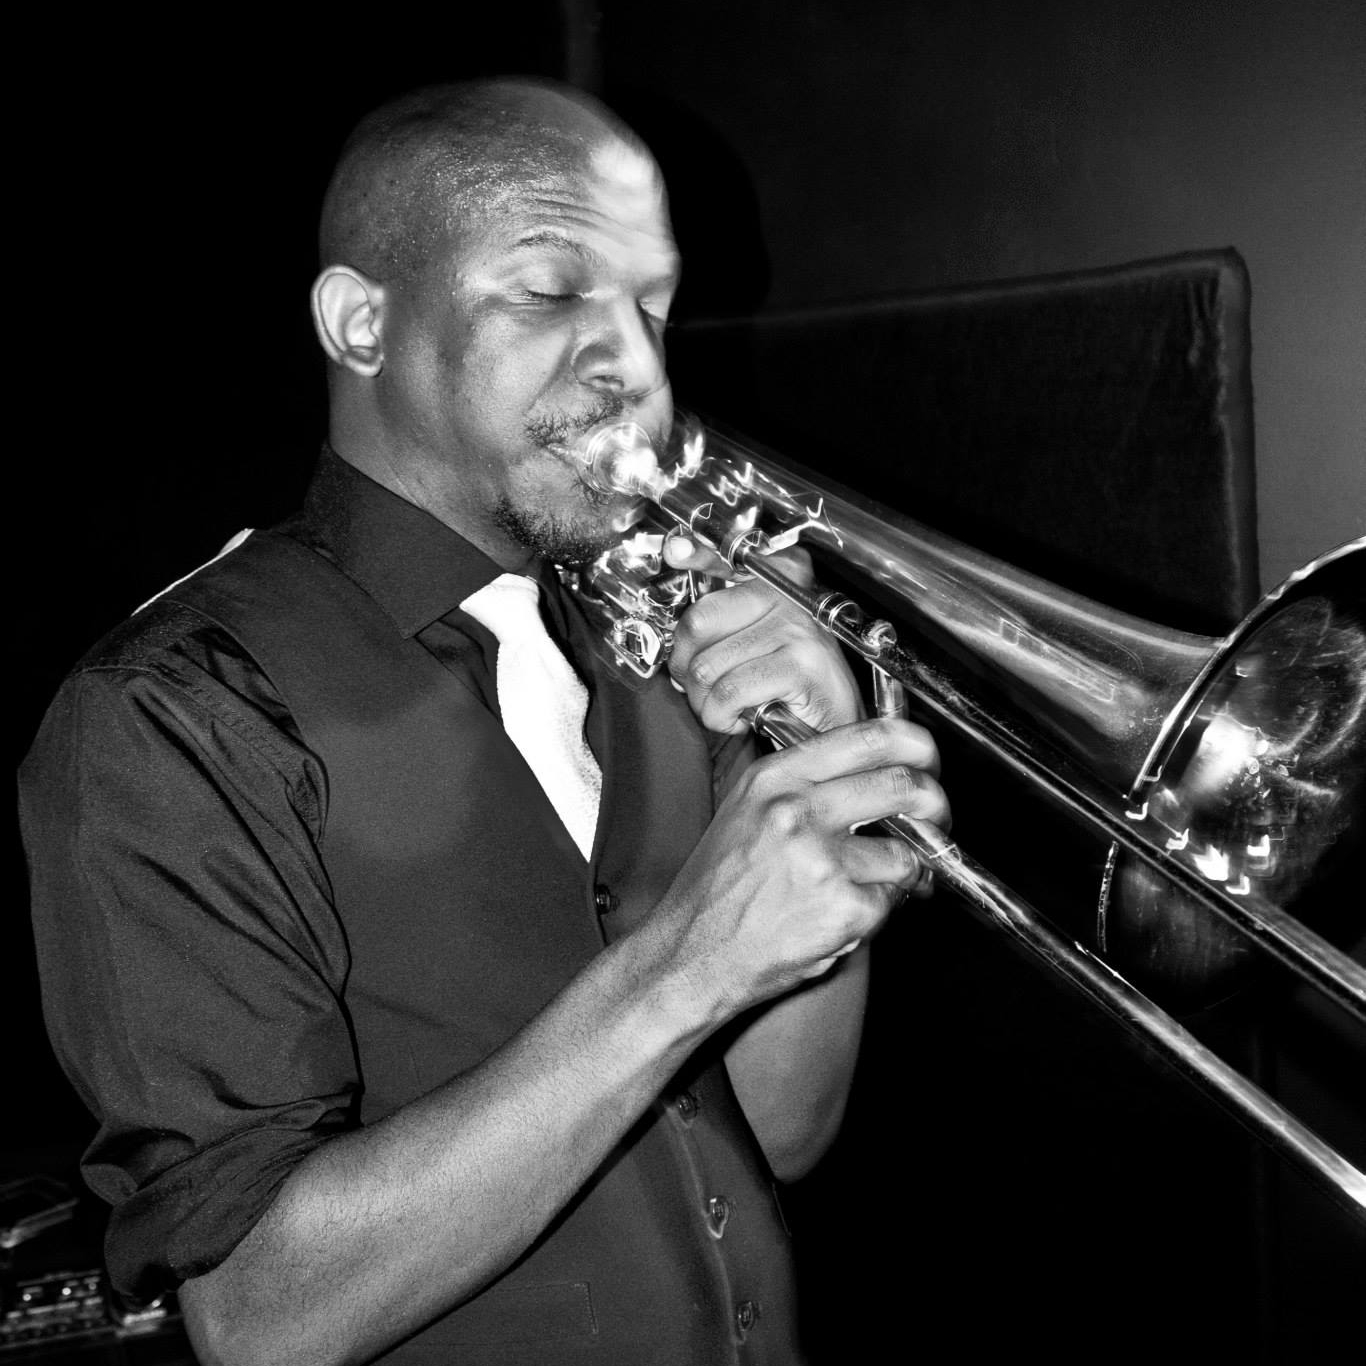 Charles Parkman - Charles has been playing trombone and other low brass instruments for 15 years. He has performed with various groups around San Diego, including The Amalgamated, Brass Hysteria, and The San Diego State Marching Aztecs